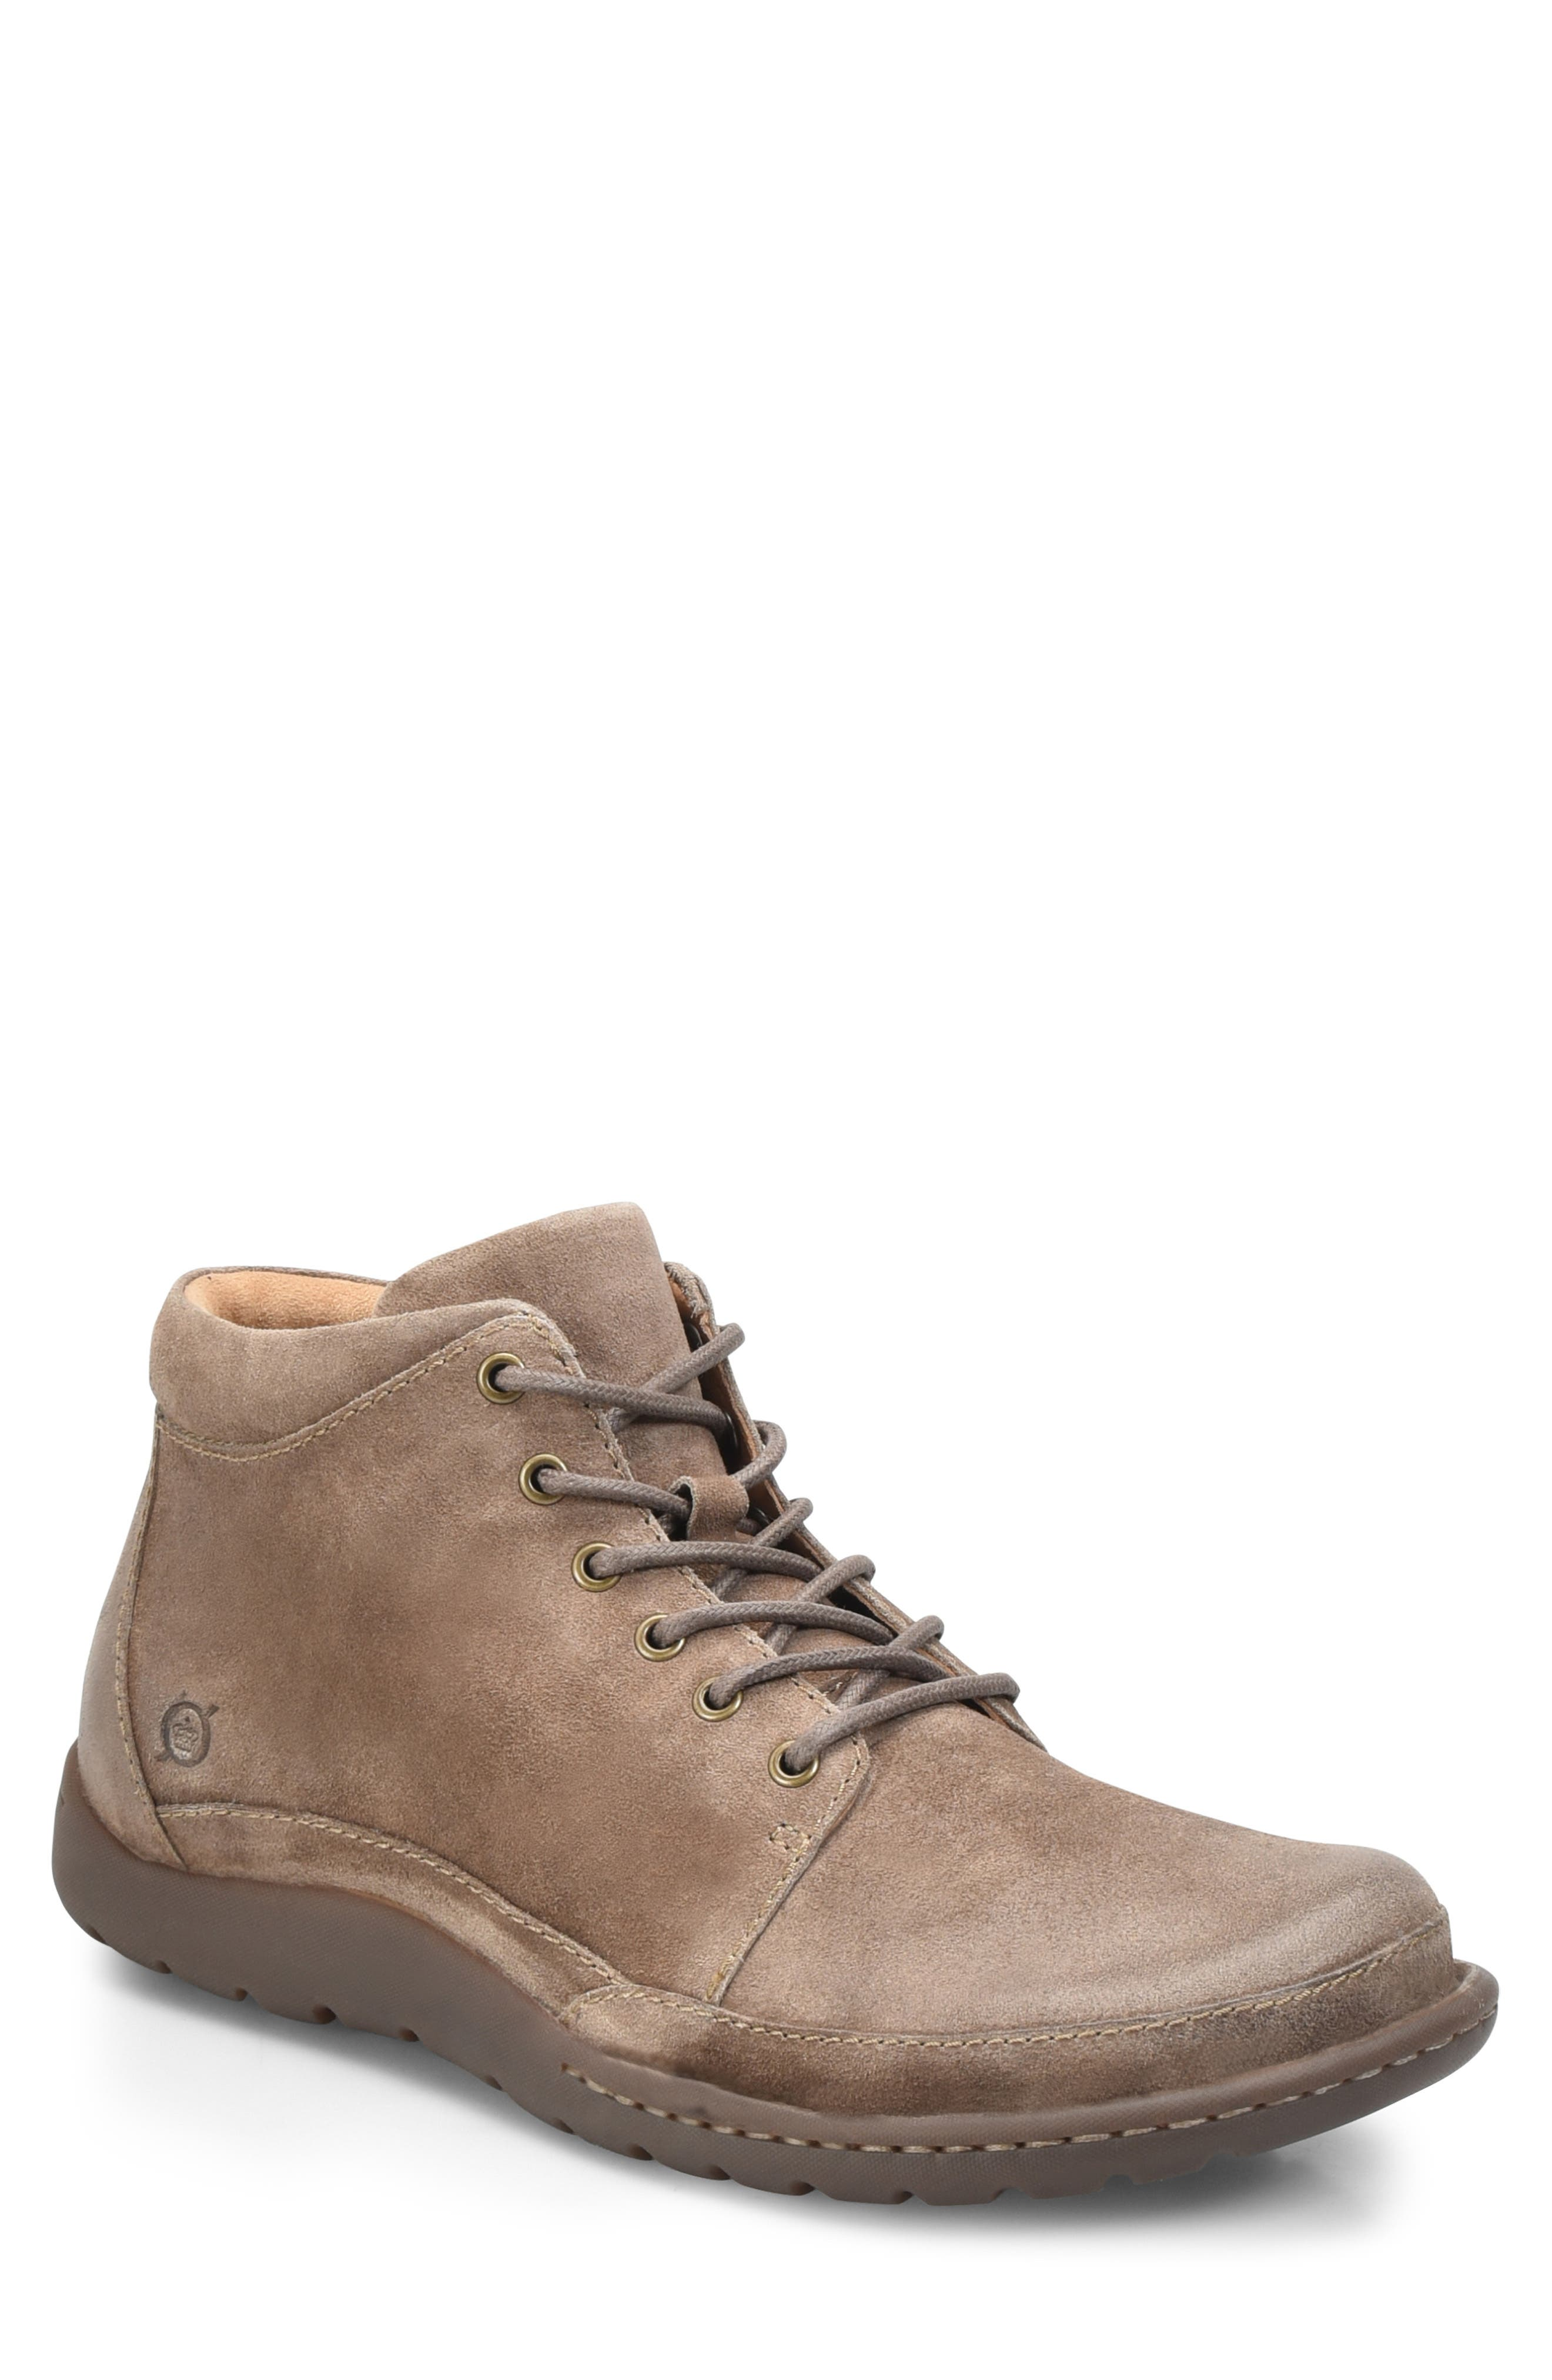 BØRN Nigel Low Boot, Main, color, TAUPE LEATHER